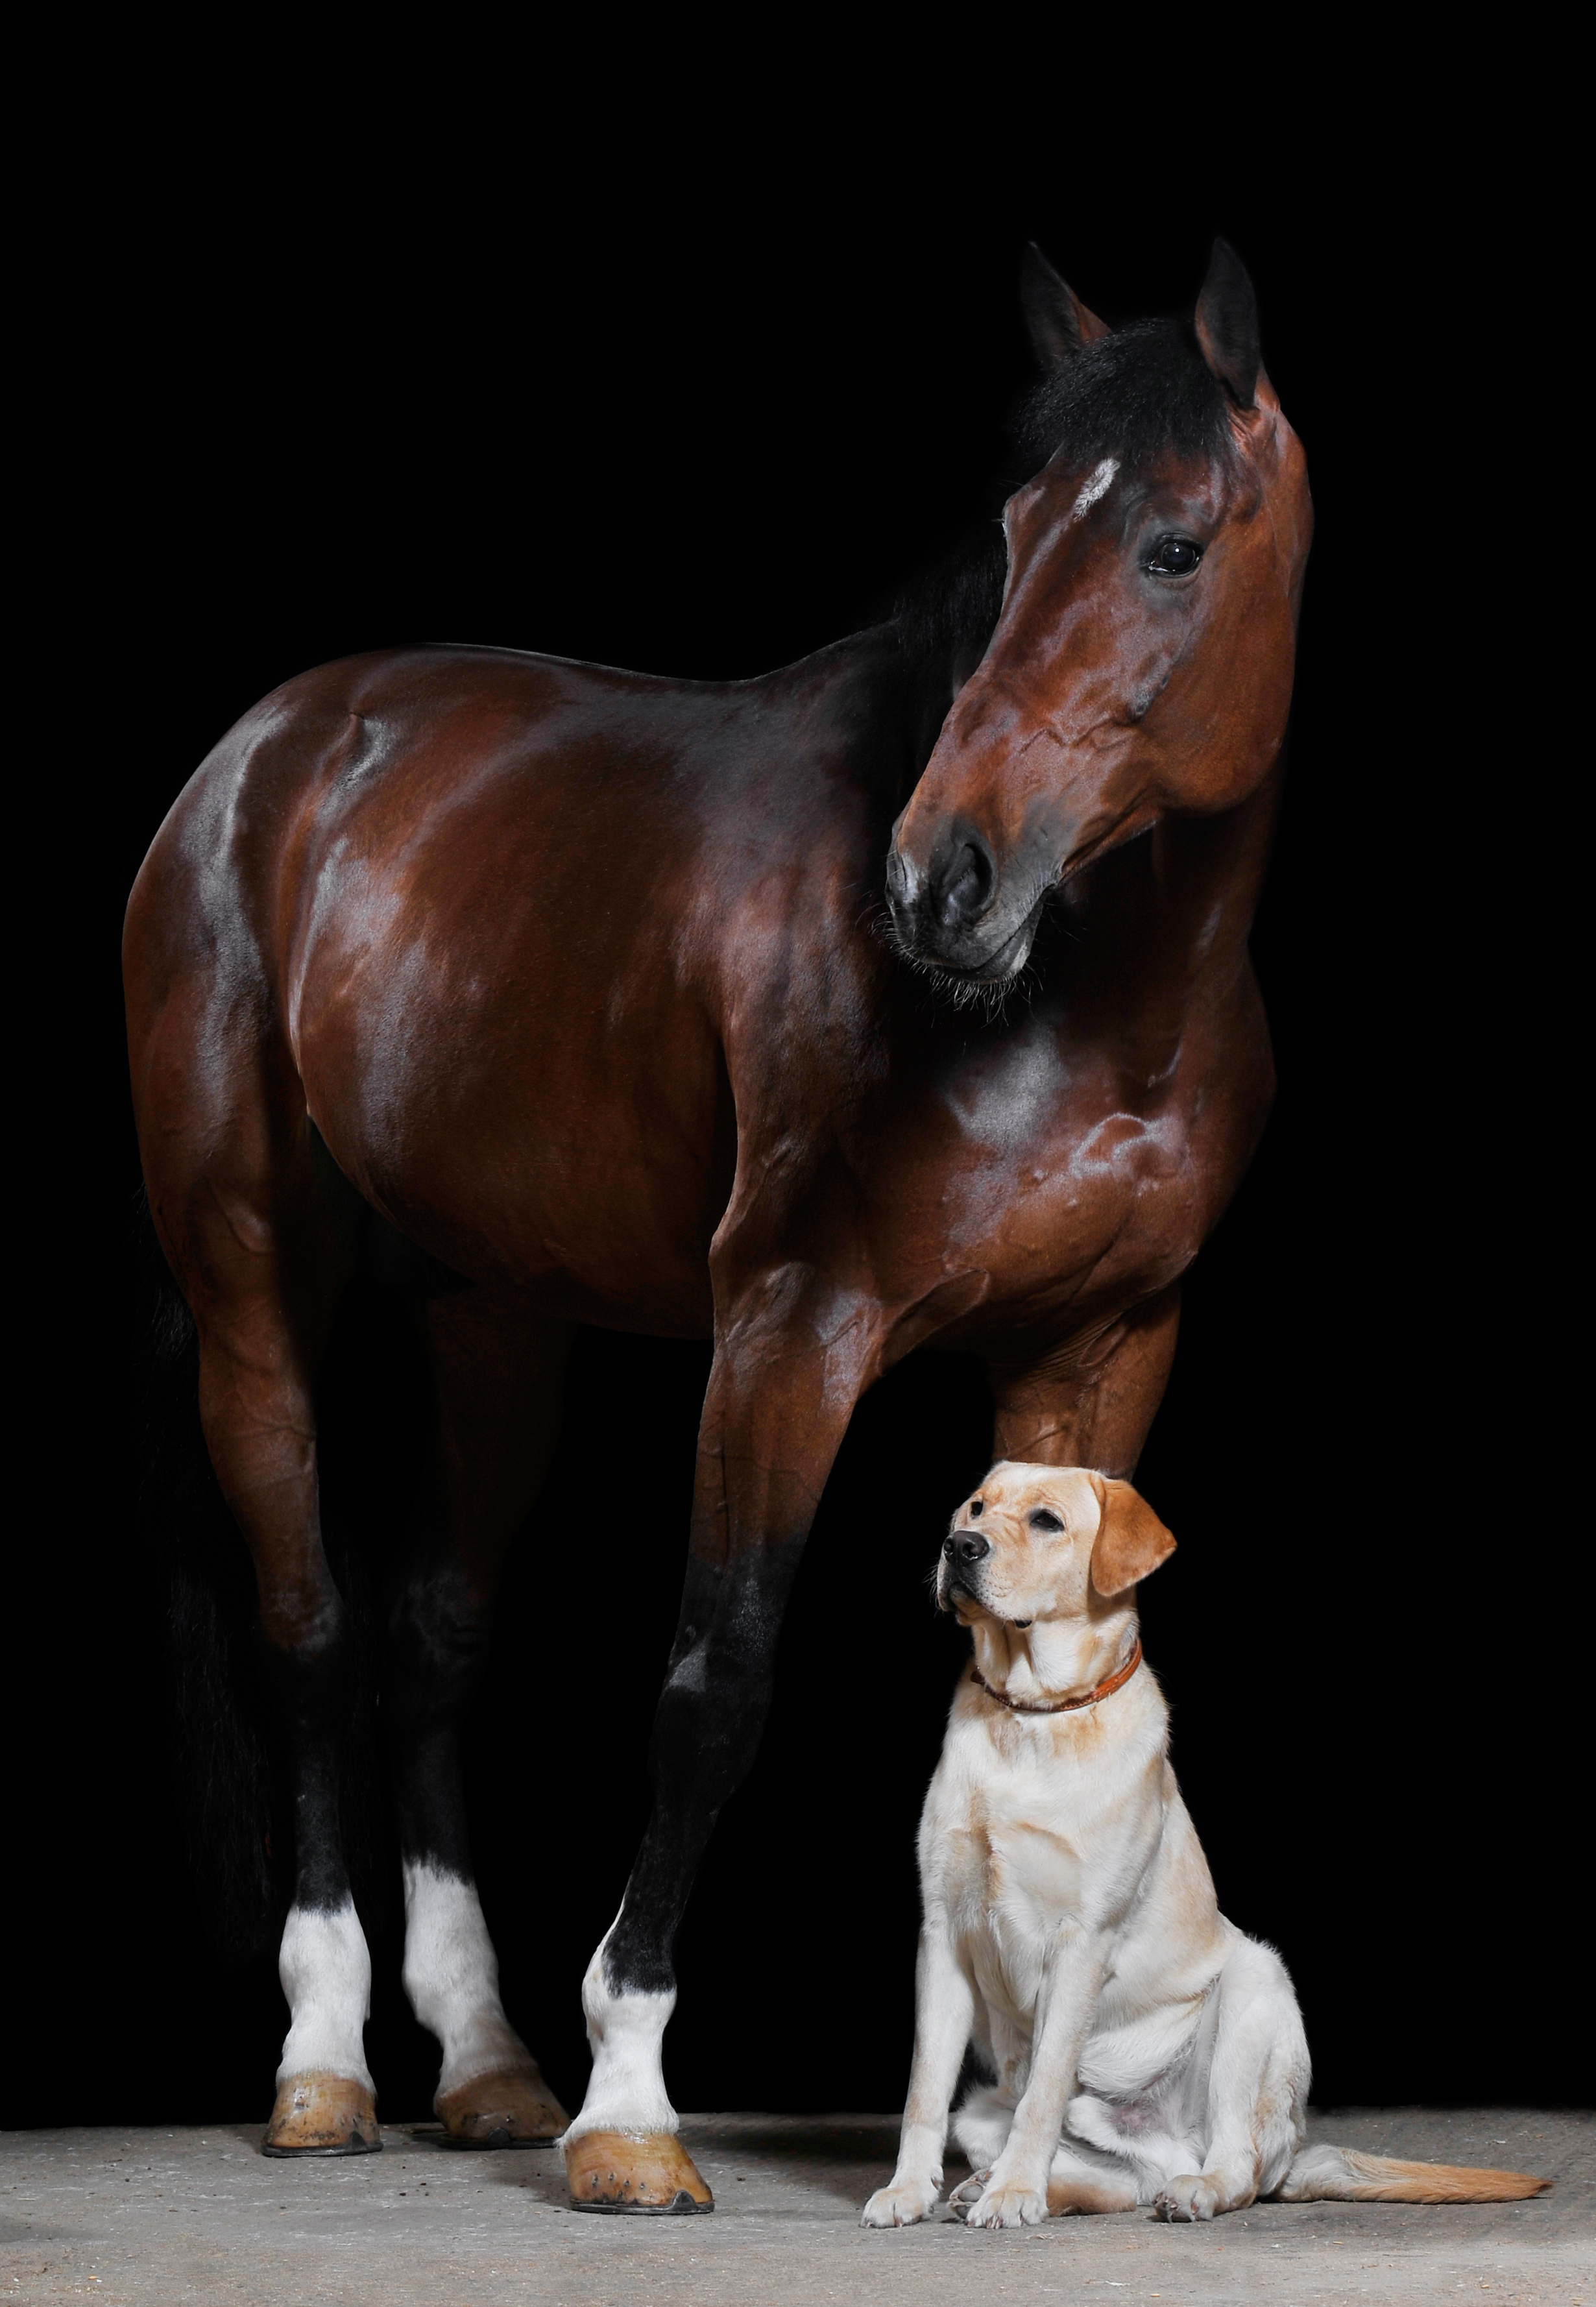 London College of Animal Osteopathy's programs are geared towards veterinarians, osteopaths, physiotherapists, dog trainers and other animal professionals seeking top quality training at a leading institute for canine and equine osteopathy.